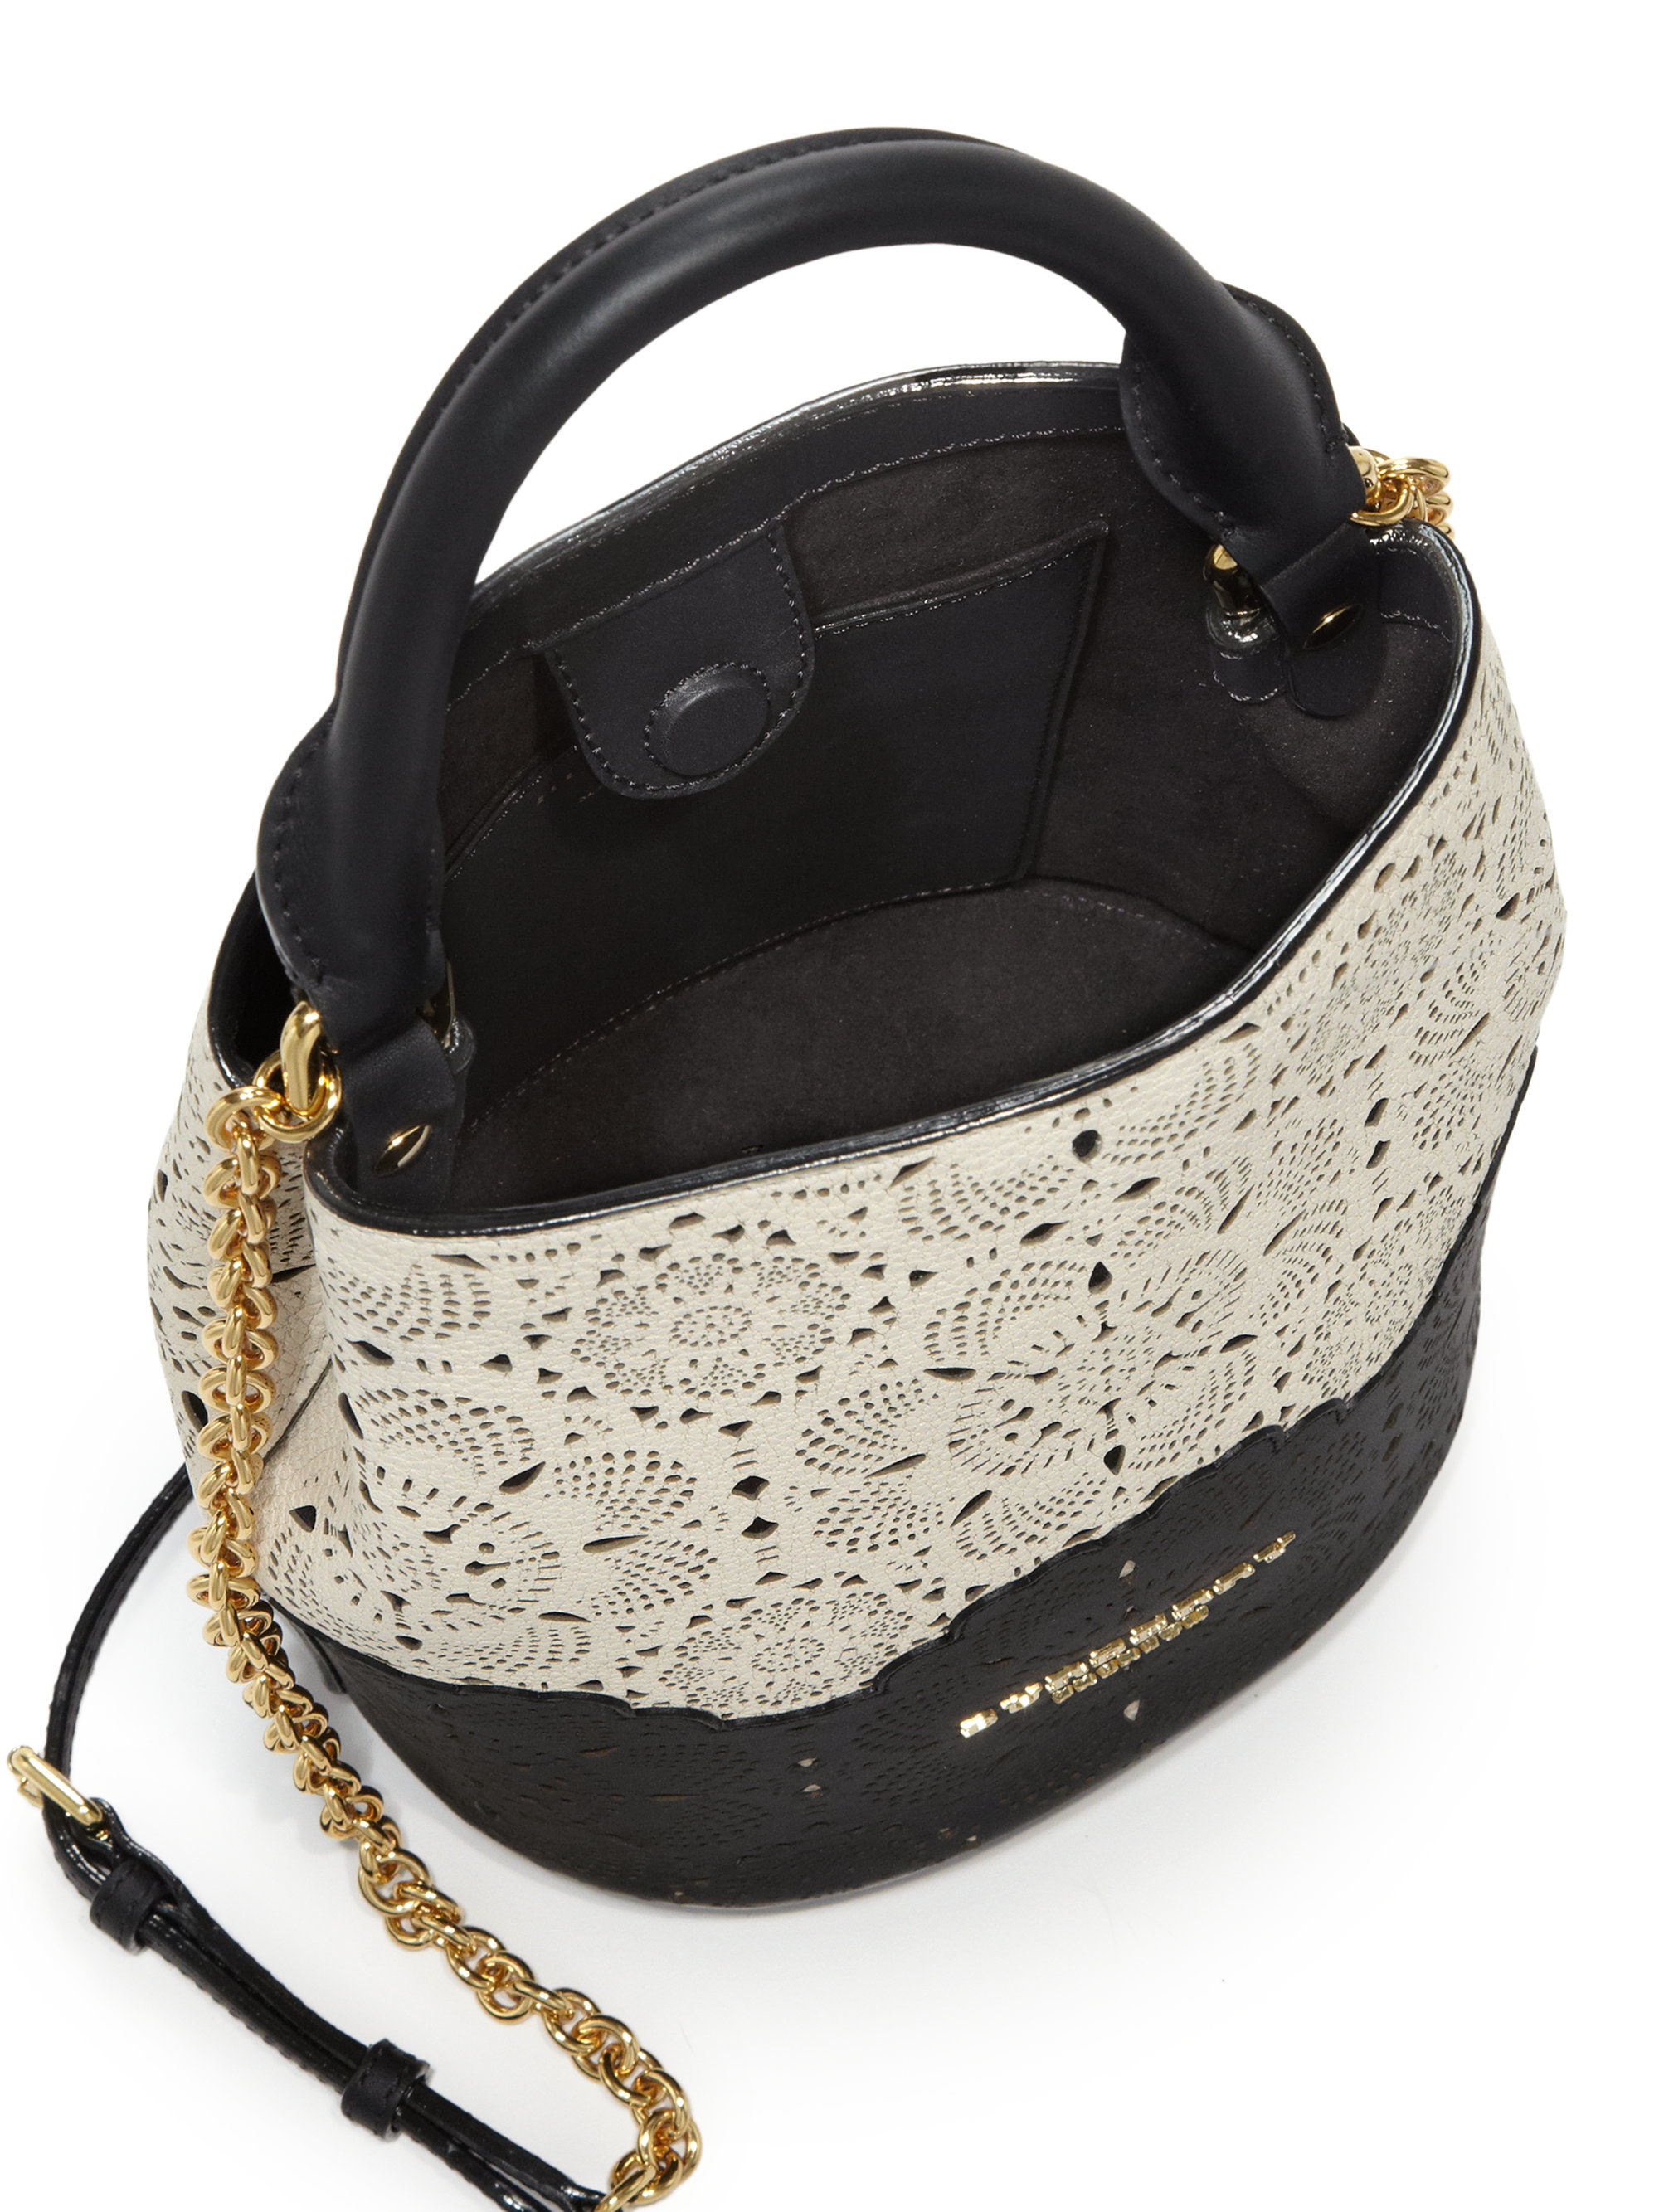 Burberry Small Two Tone Laser Cut Leather Bucket Bag In